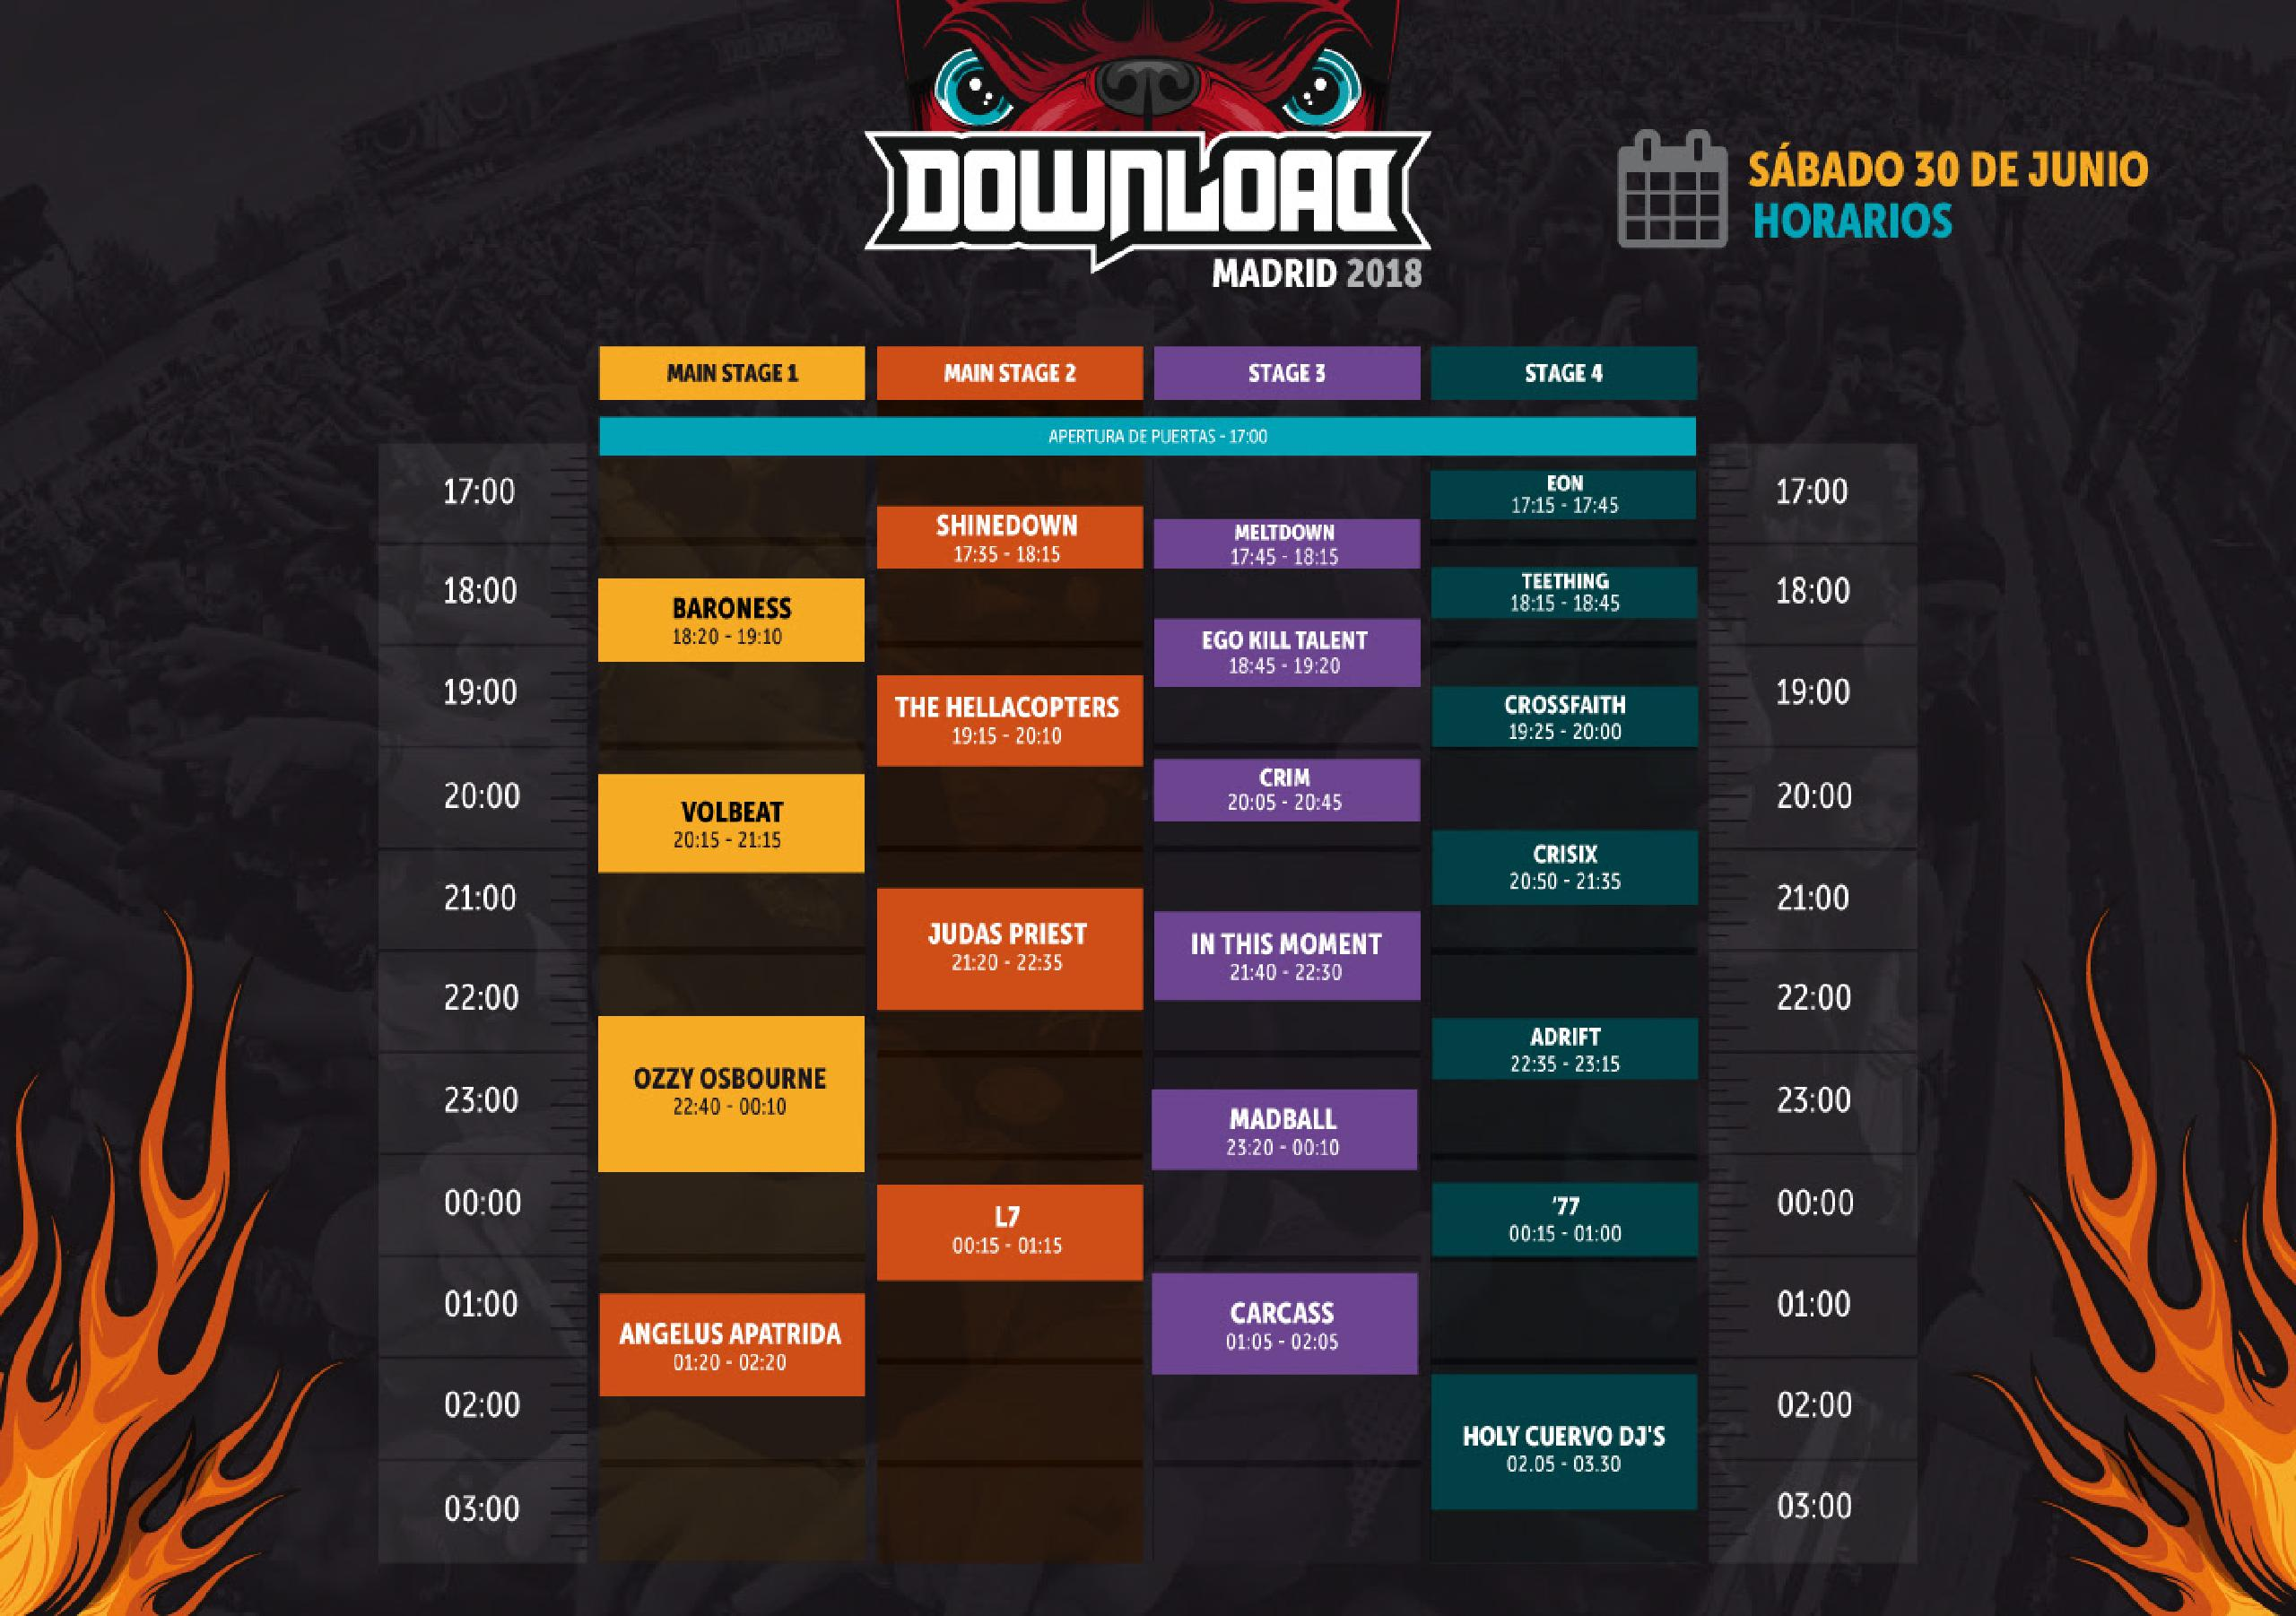 Horarios Download Madrid 2018 sábado